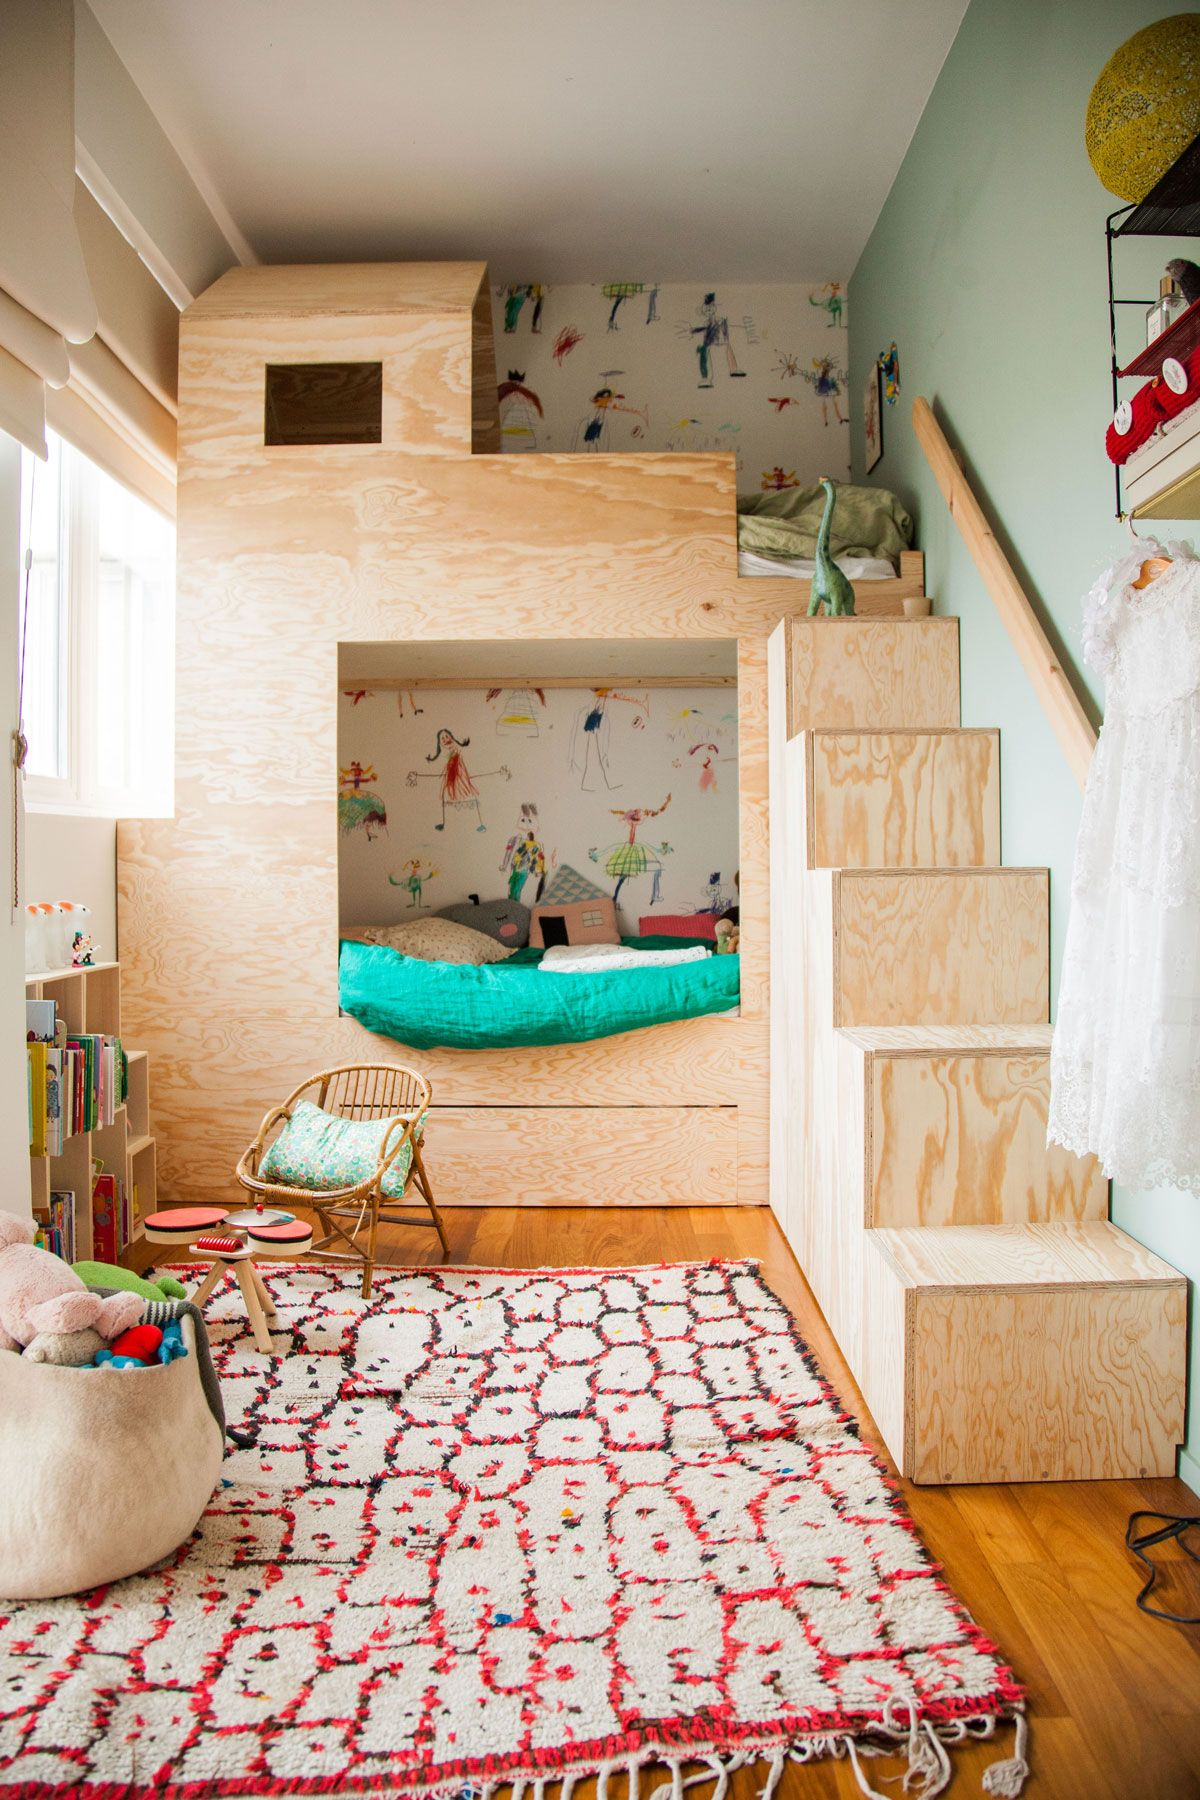 Picture of: Twin Room Bunk Bed And Sharing Kids Room Ideas For Kids That Share Livingetc Livingetcdocument Documenttype